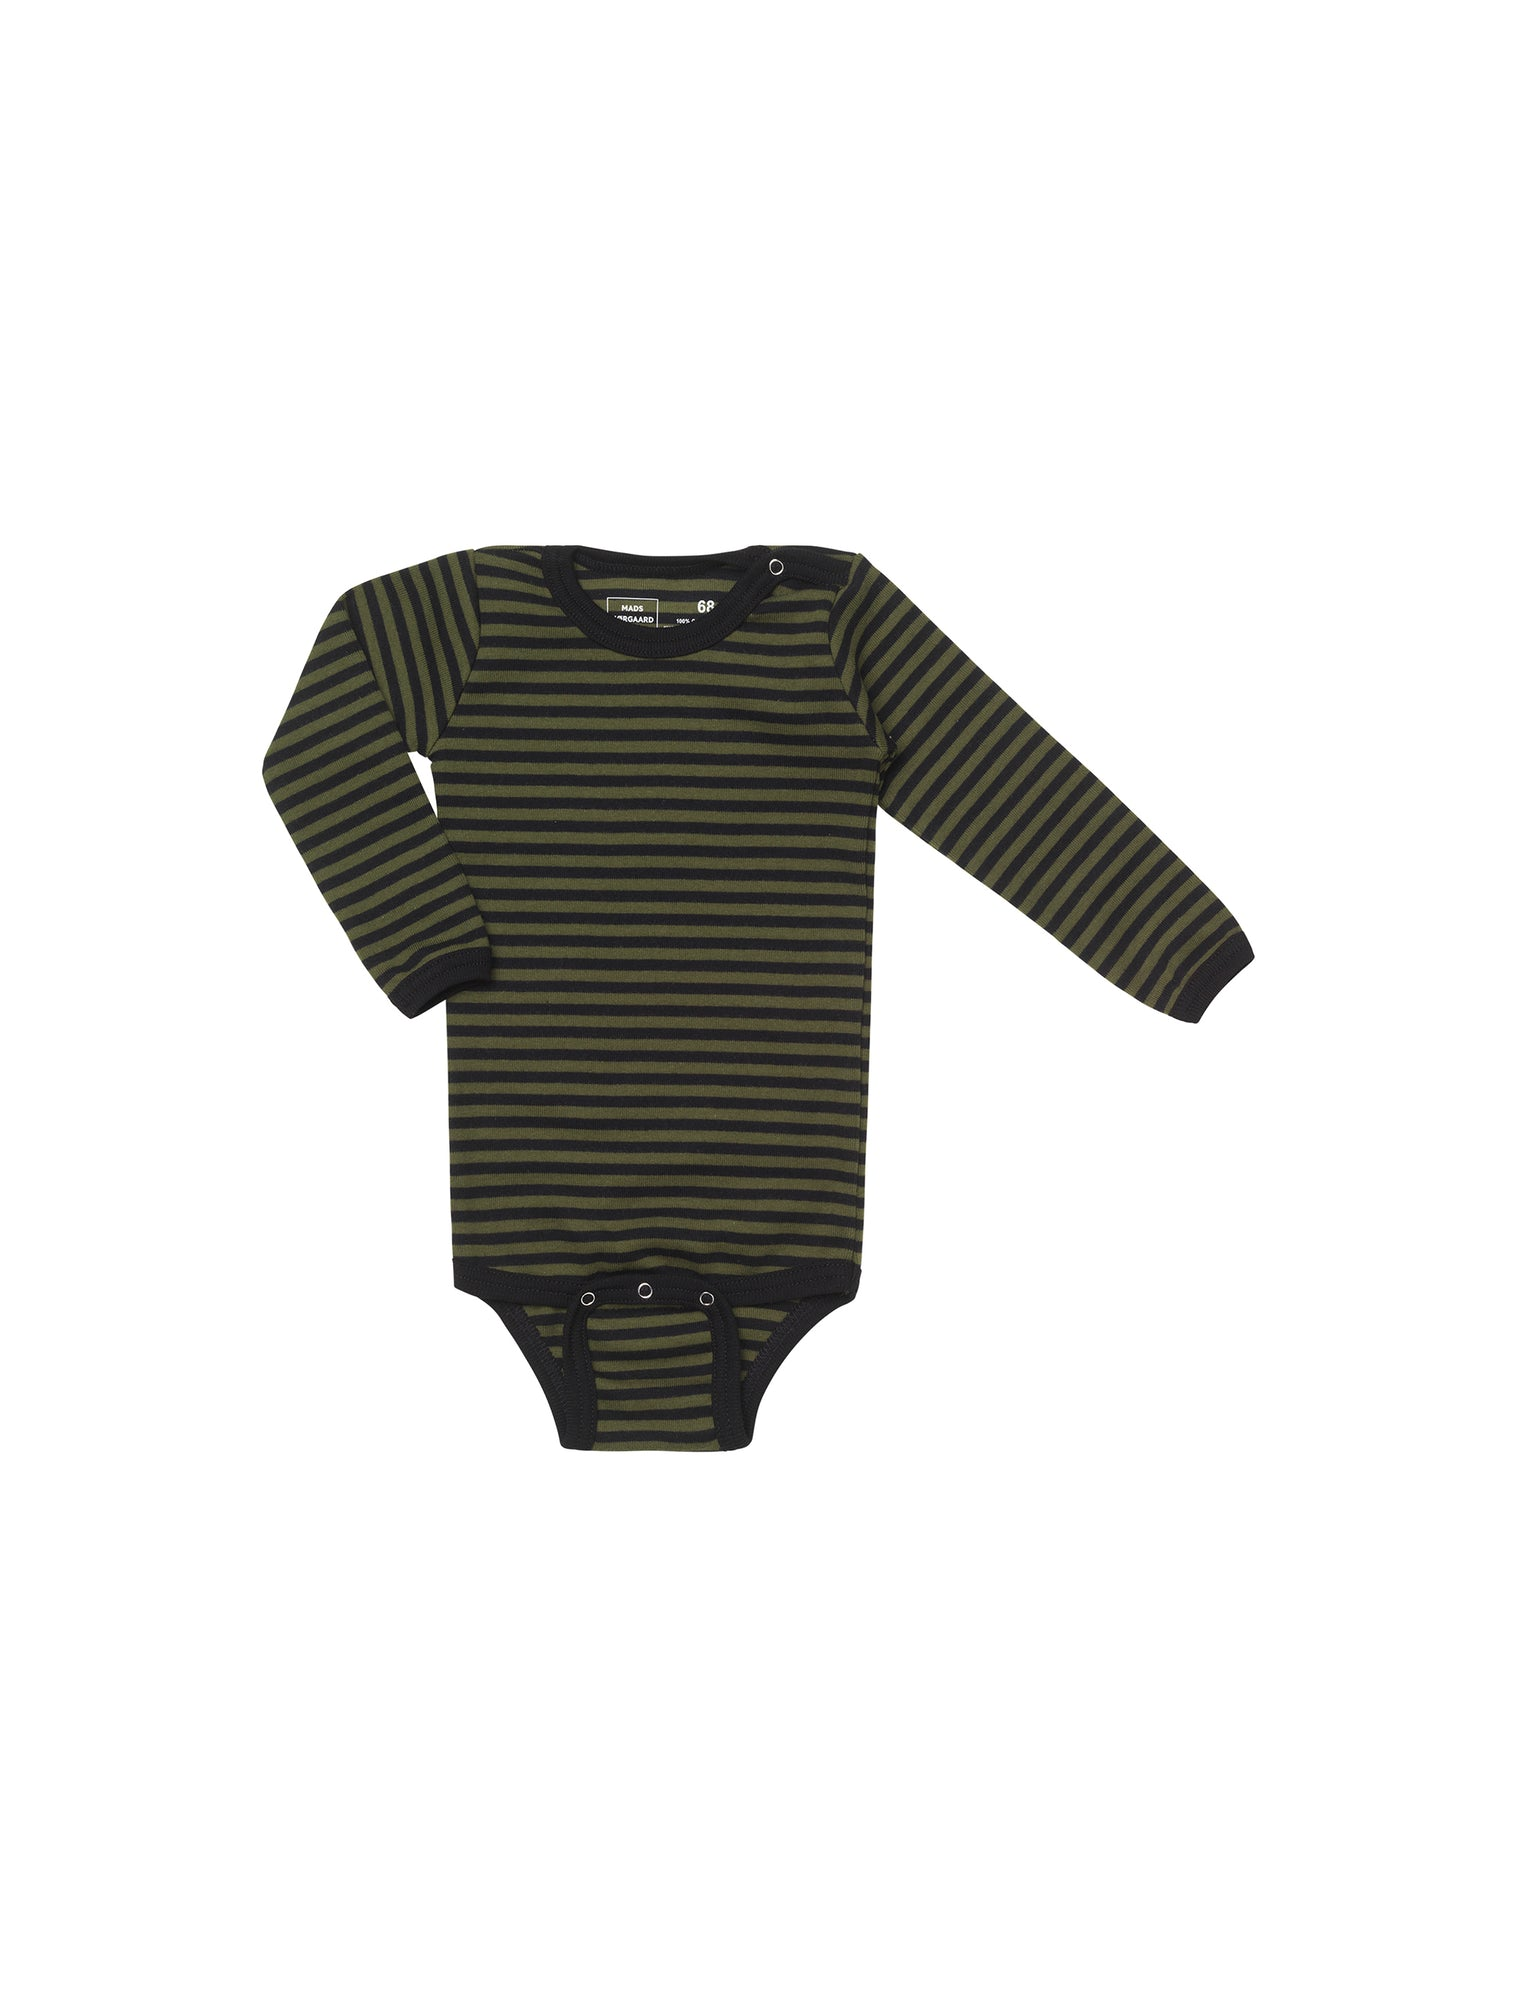 Duo Rib Body, Olive/Black